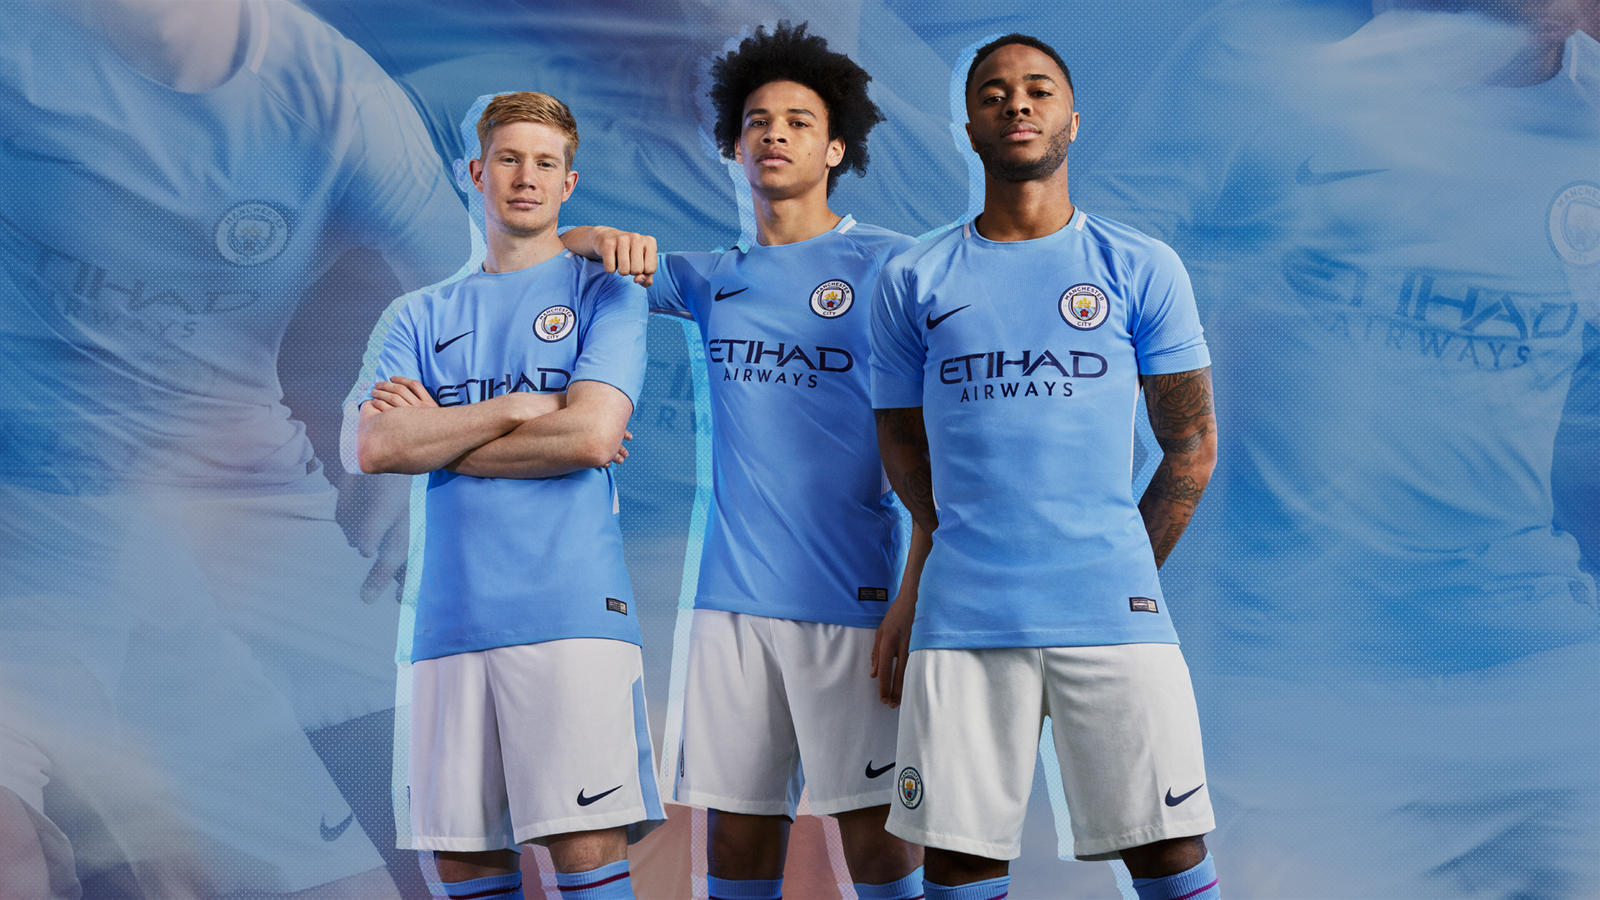 promo code ca955 d29d6 50 Years On, Nike Reinvents a Classic For Manchester City's ...